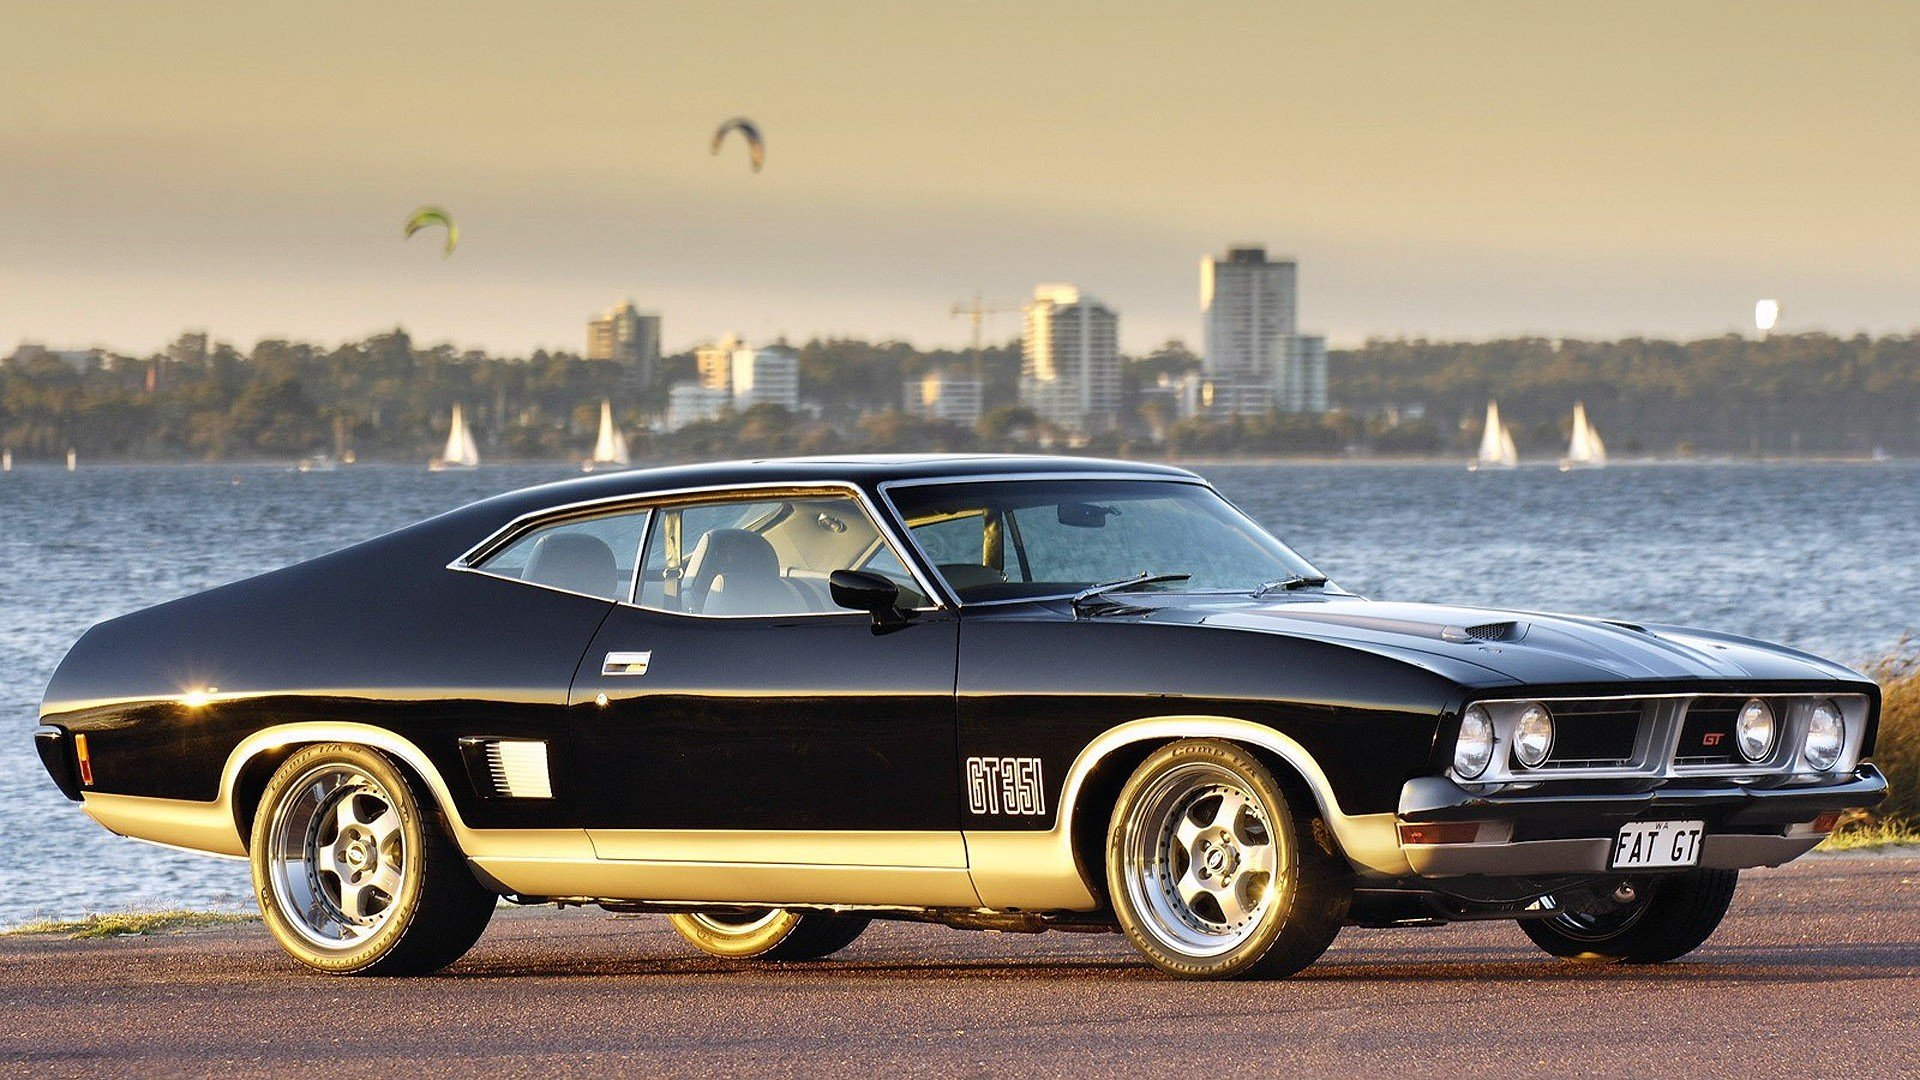 1920x1080 - Ford Falcon Wallpapers 6